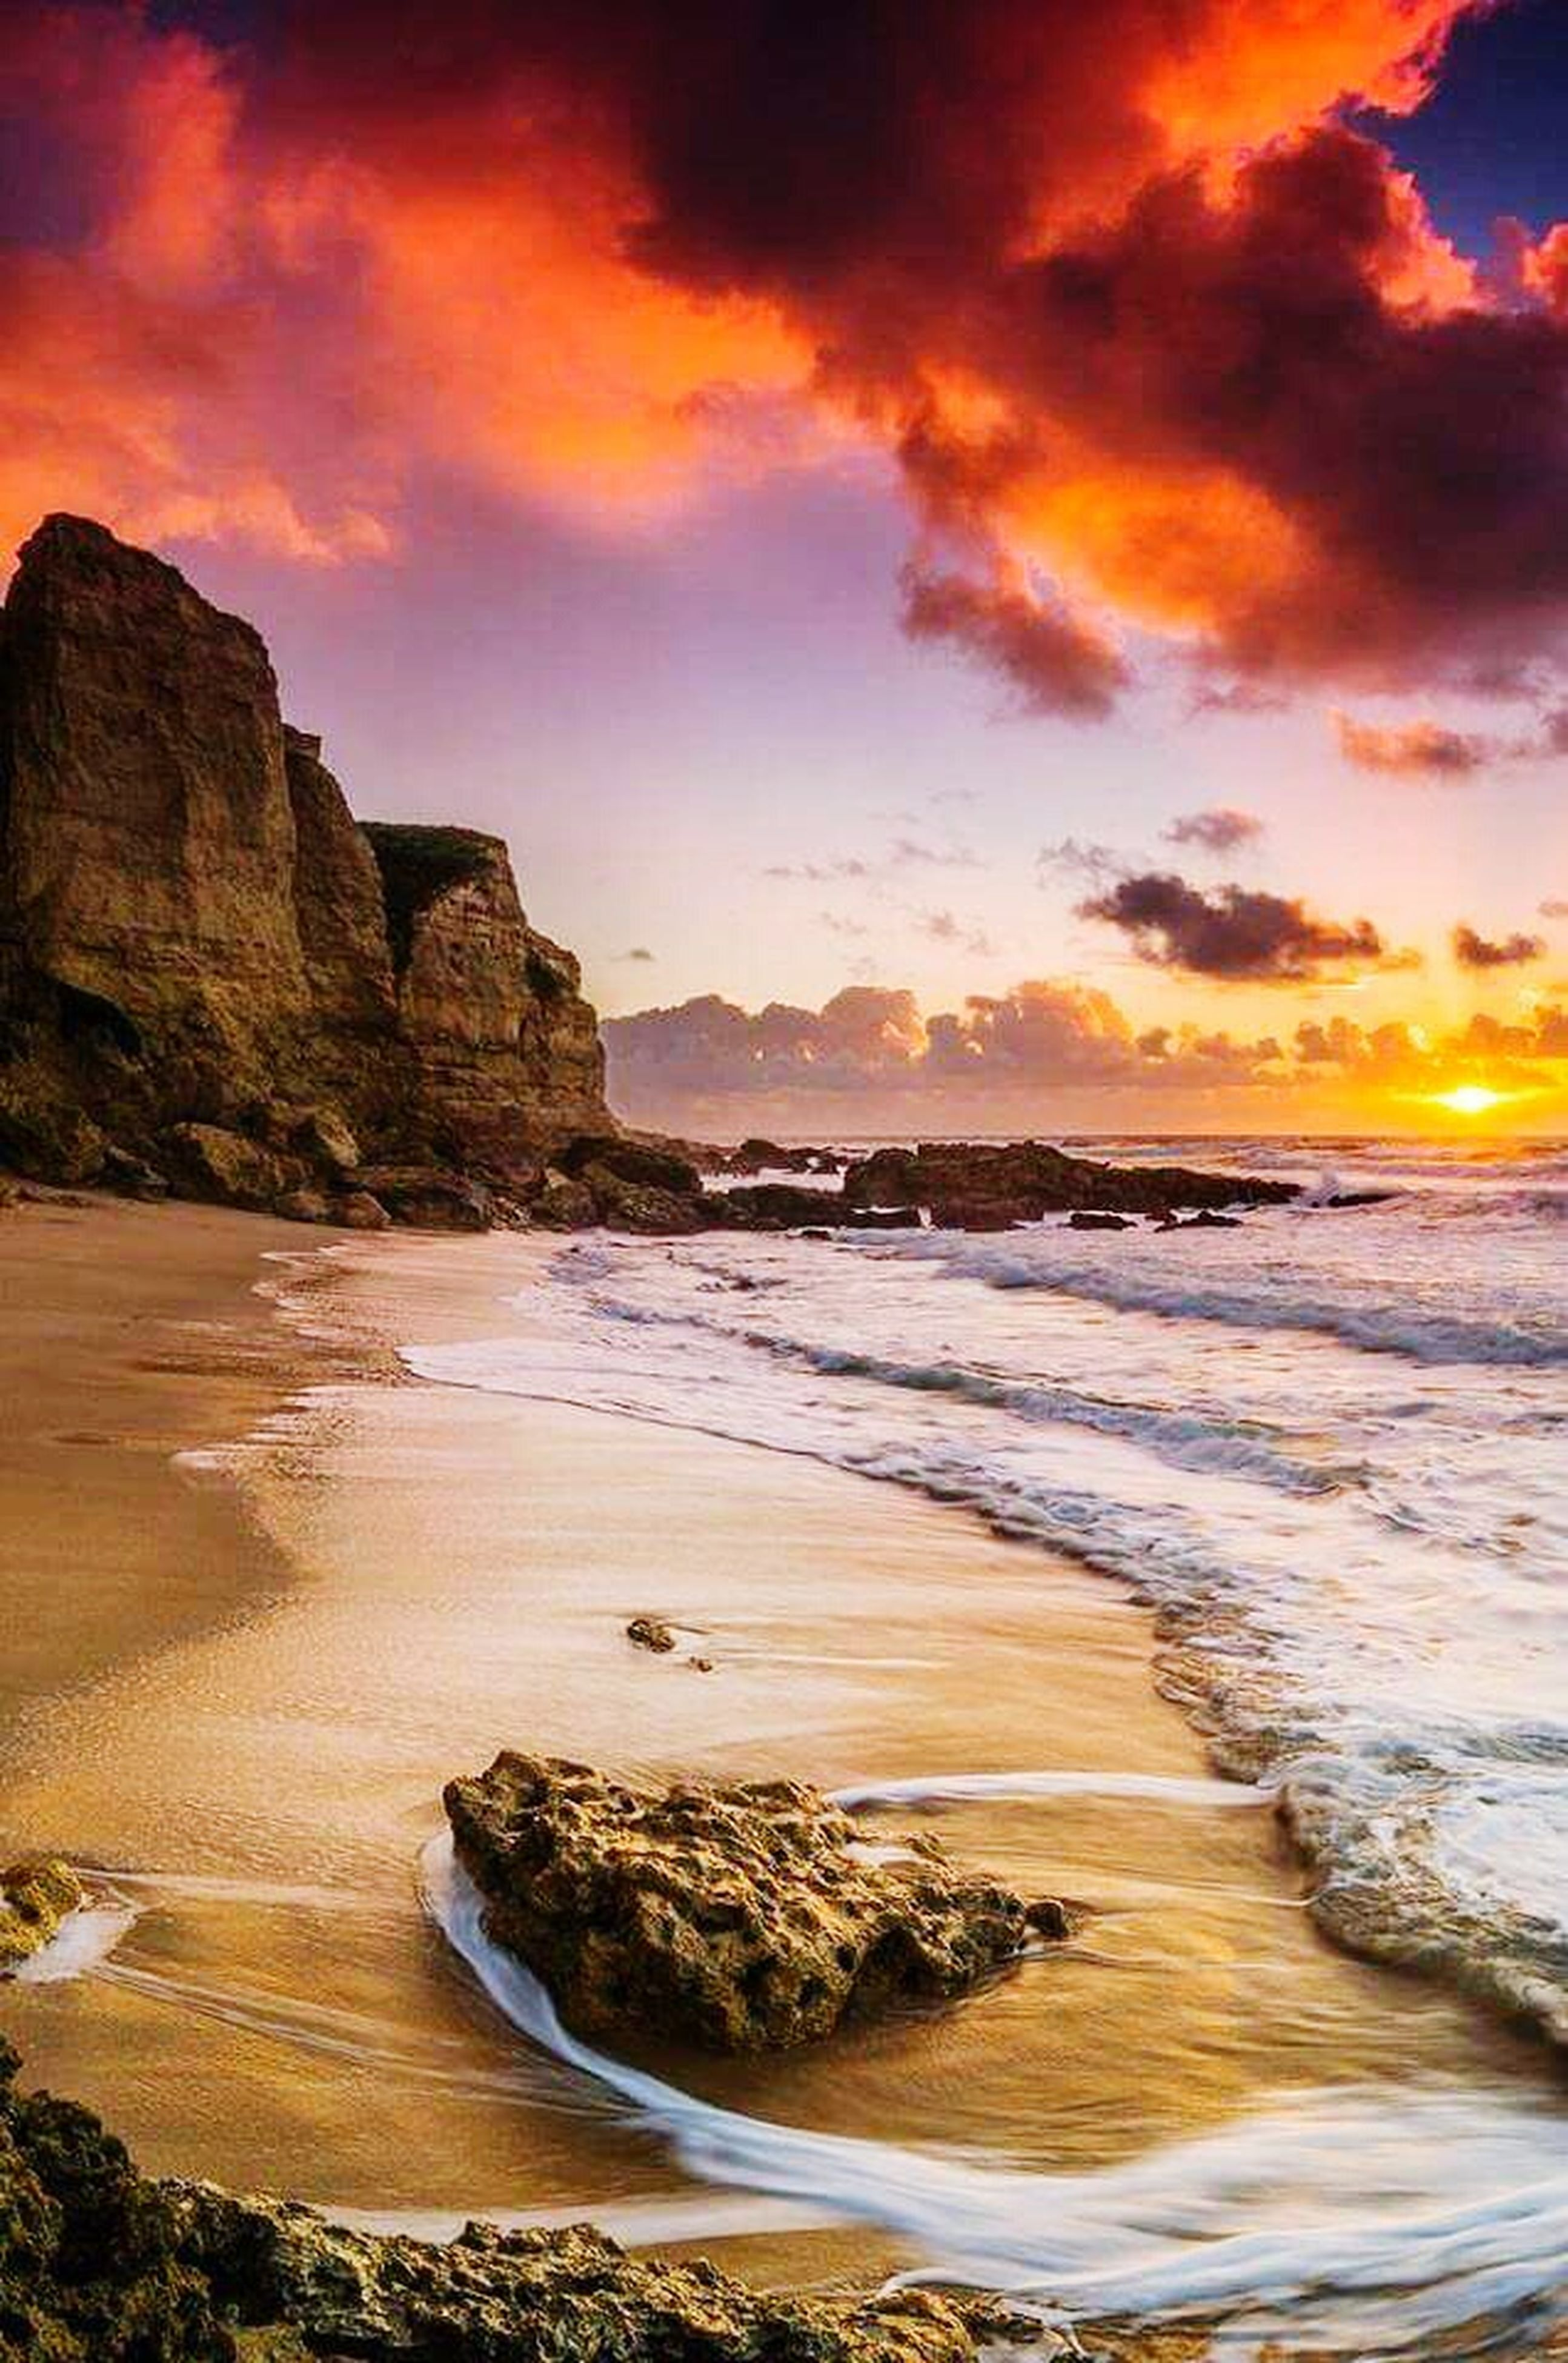 sea, water, beach, sunset, scenics, beauty in nature, sky, shore, tranquil scene, tranquility, horizon over water, cloud - sky, wave, nature, rock - object, idyllic, orange color, sand, surf, rock formation